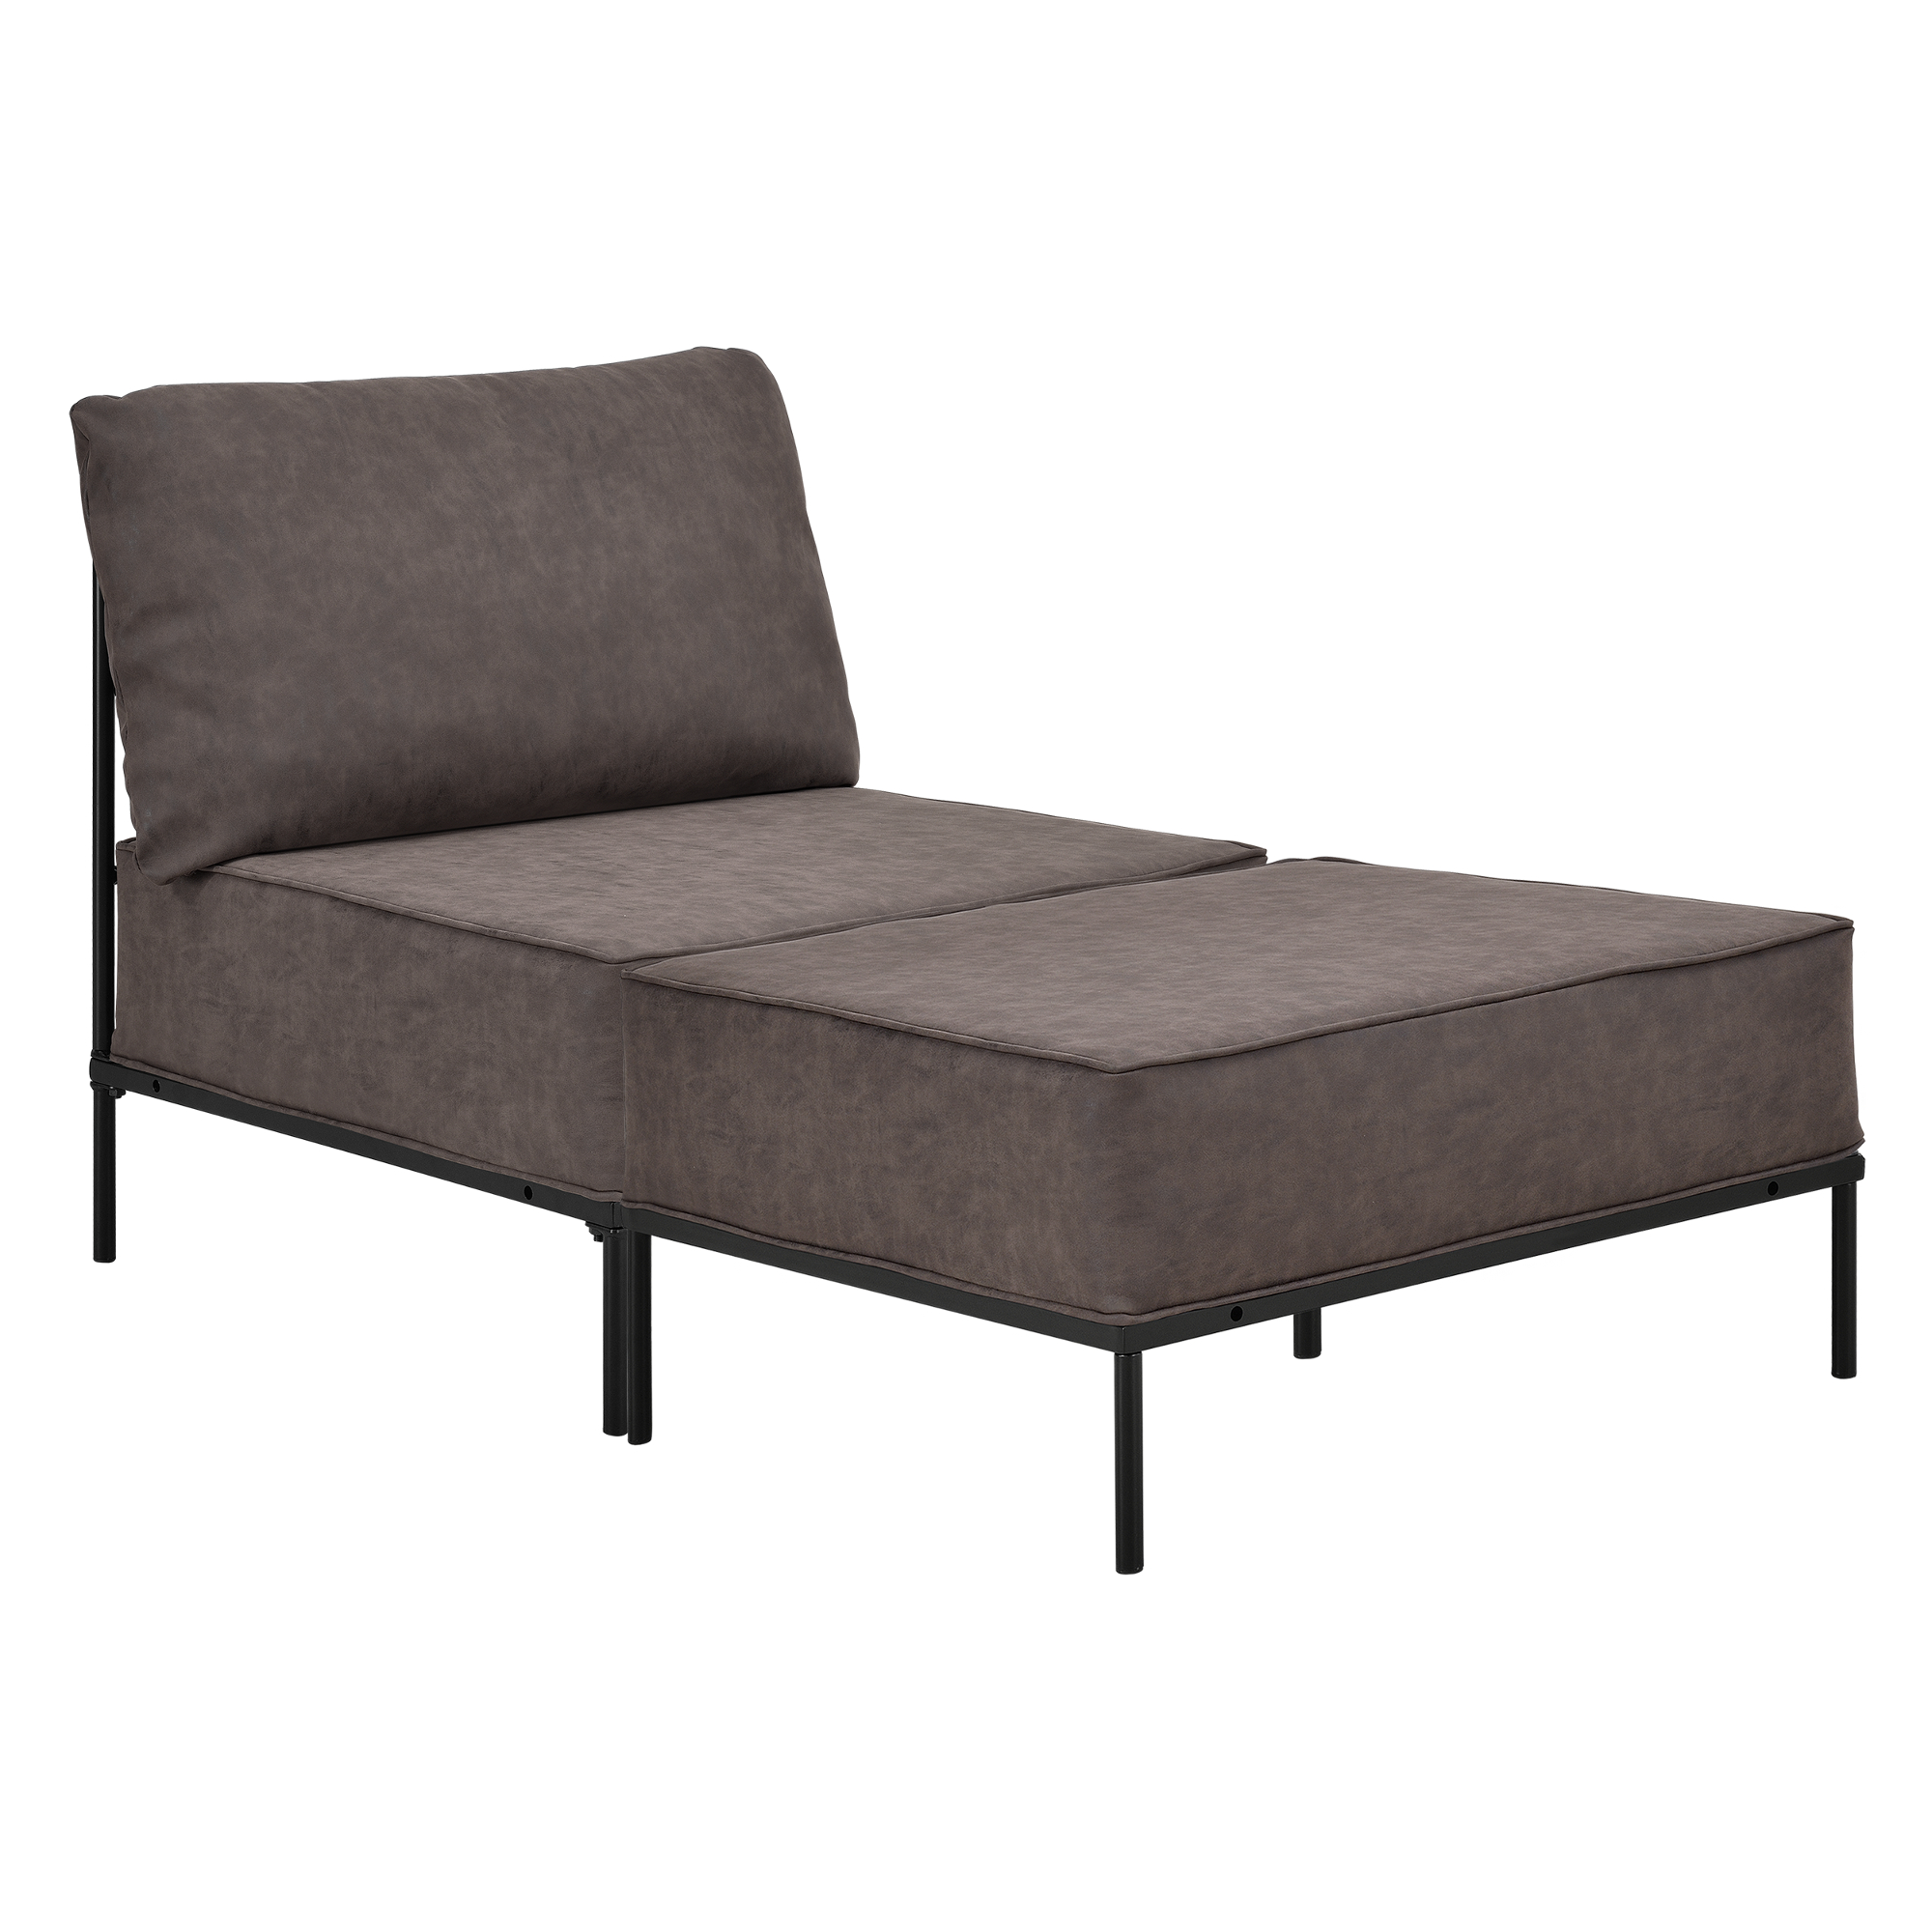 Recamiere Chaiselongue Longchair Lounge Relax Liege Sessel Sofa Couch Ebay